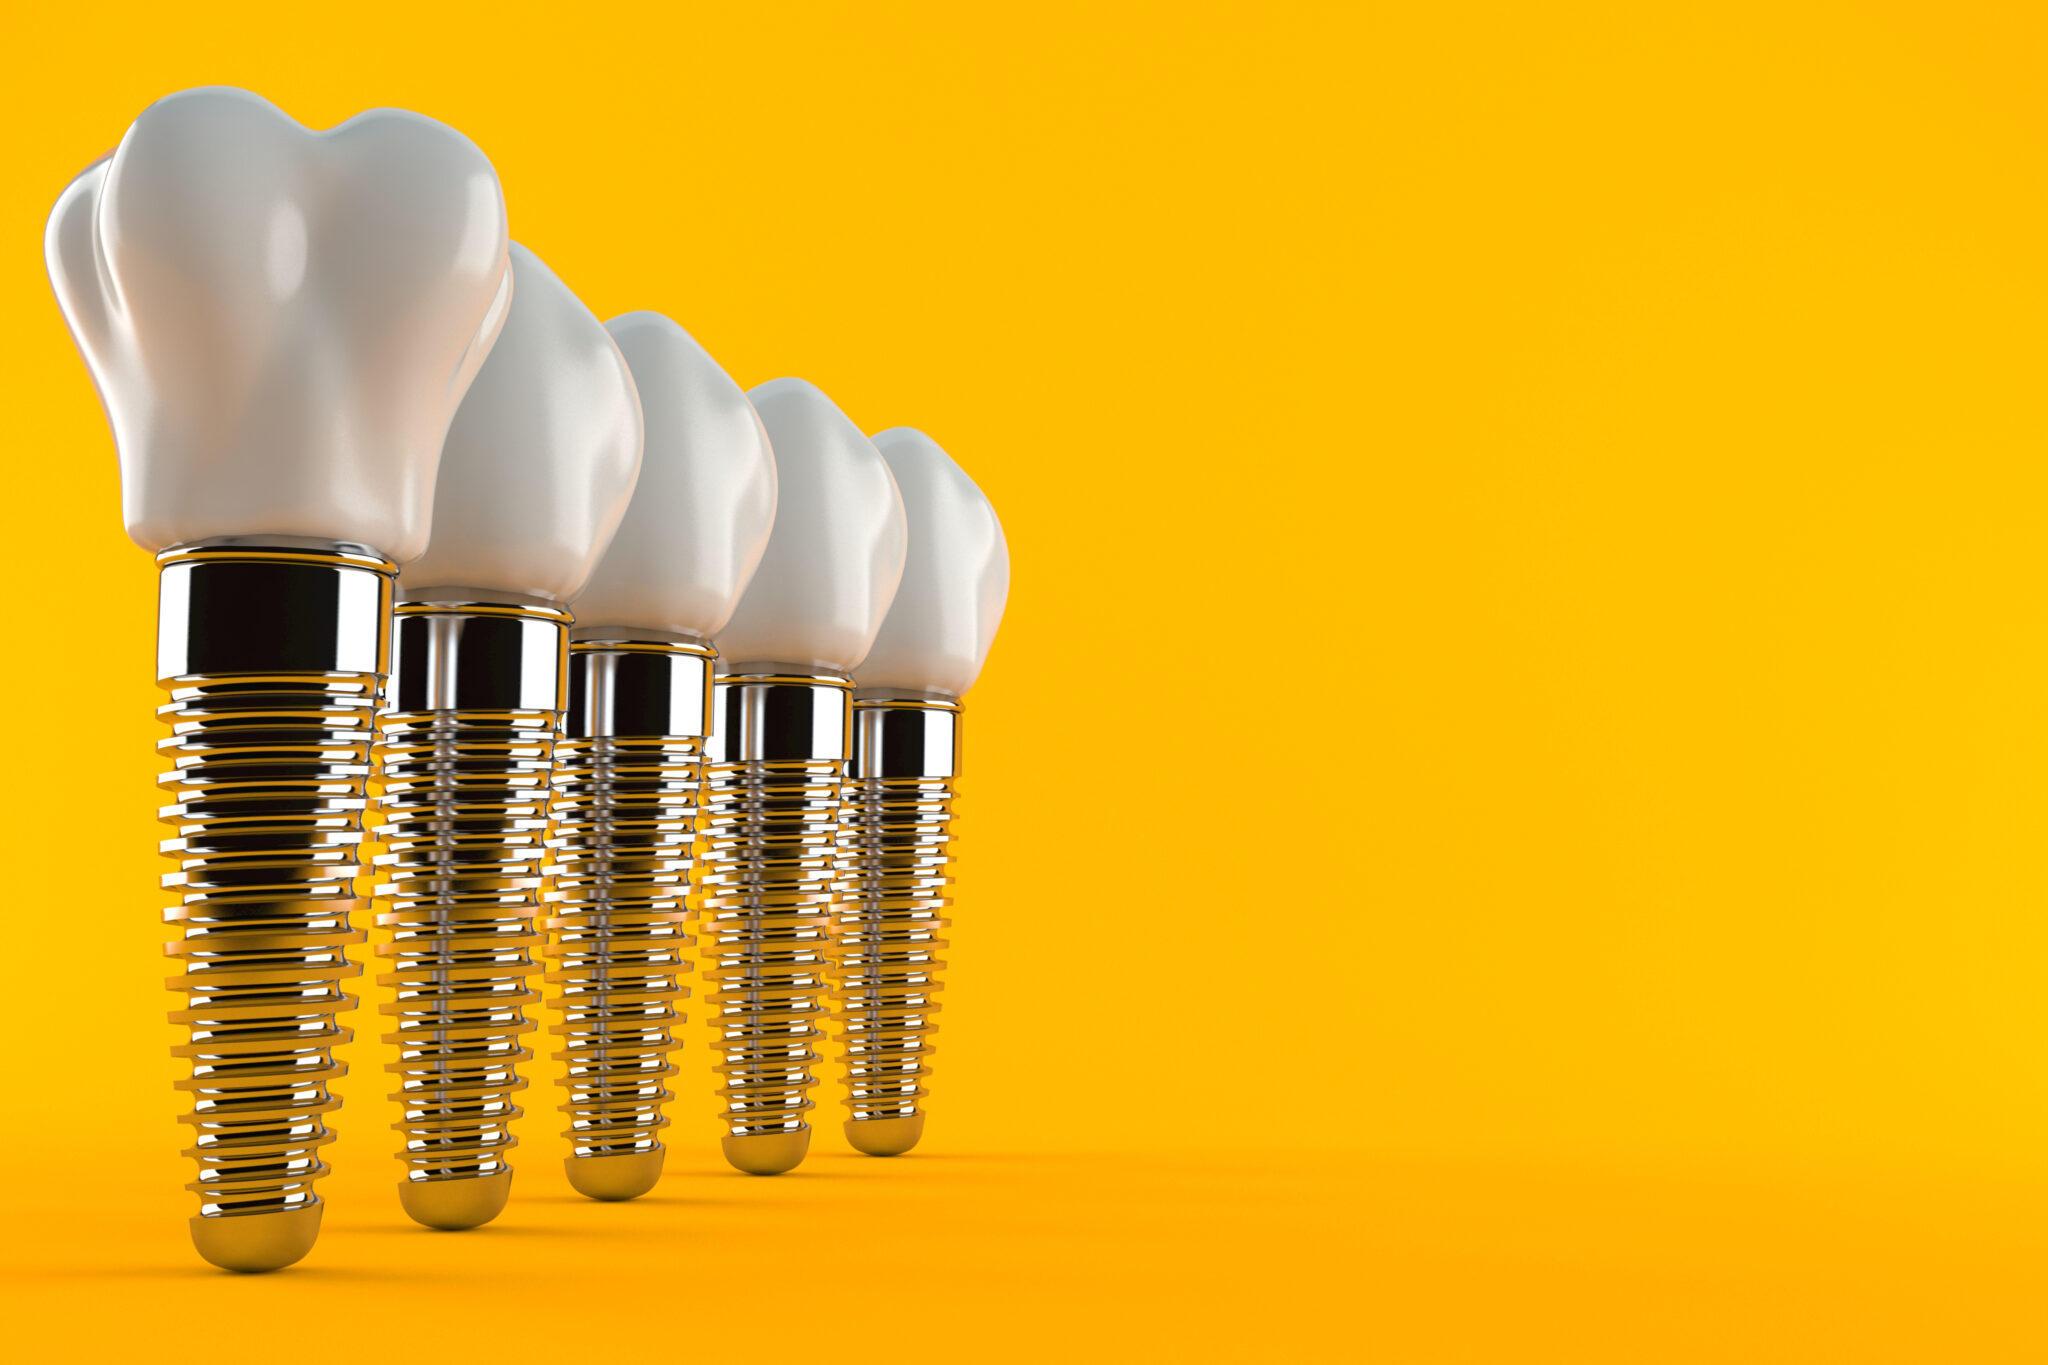 Dental implants vs. dental bridges: which one is right for you?